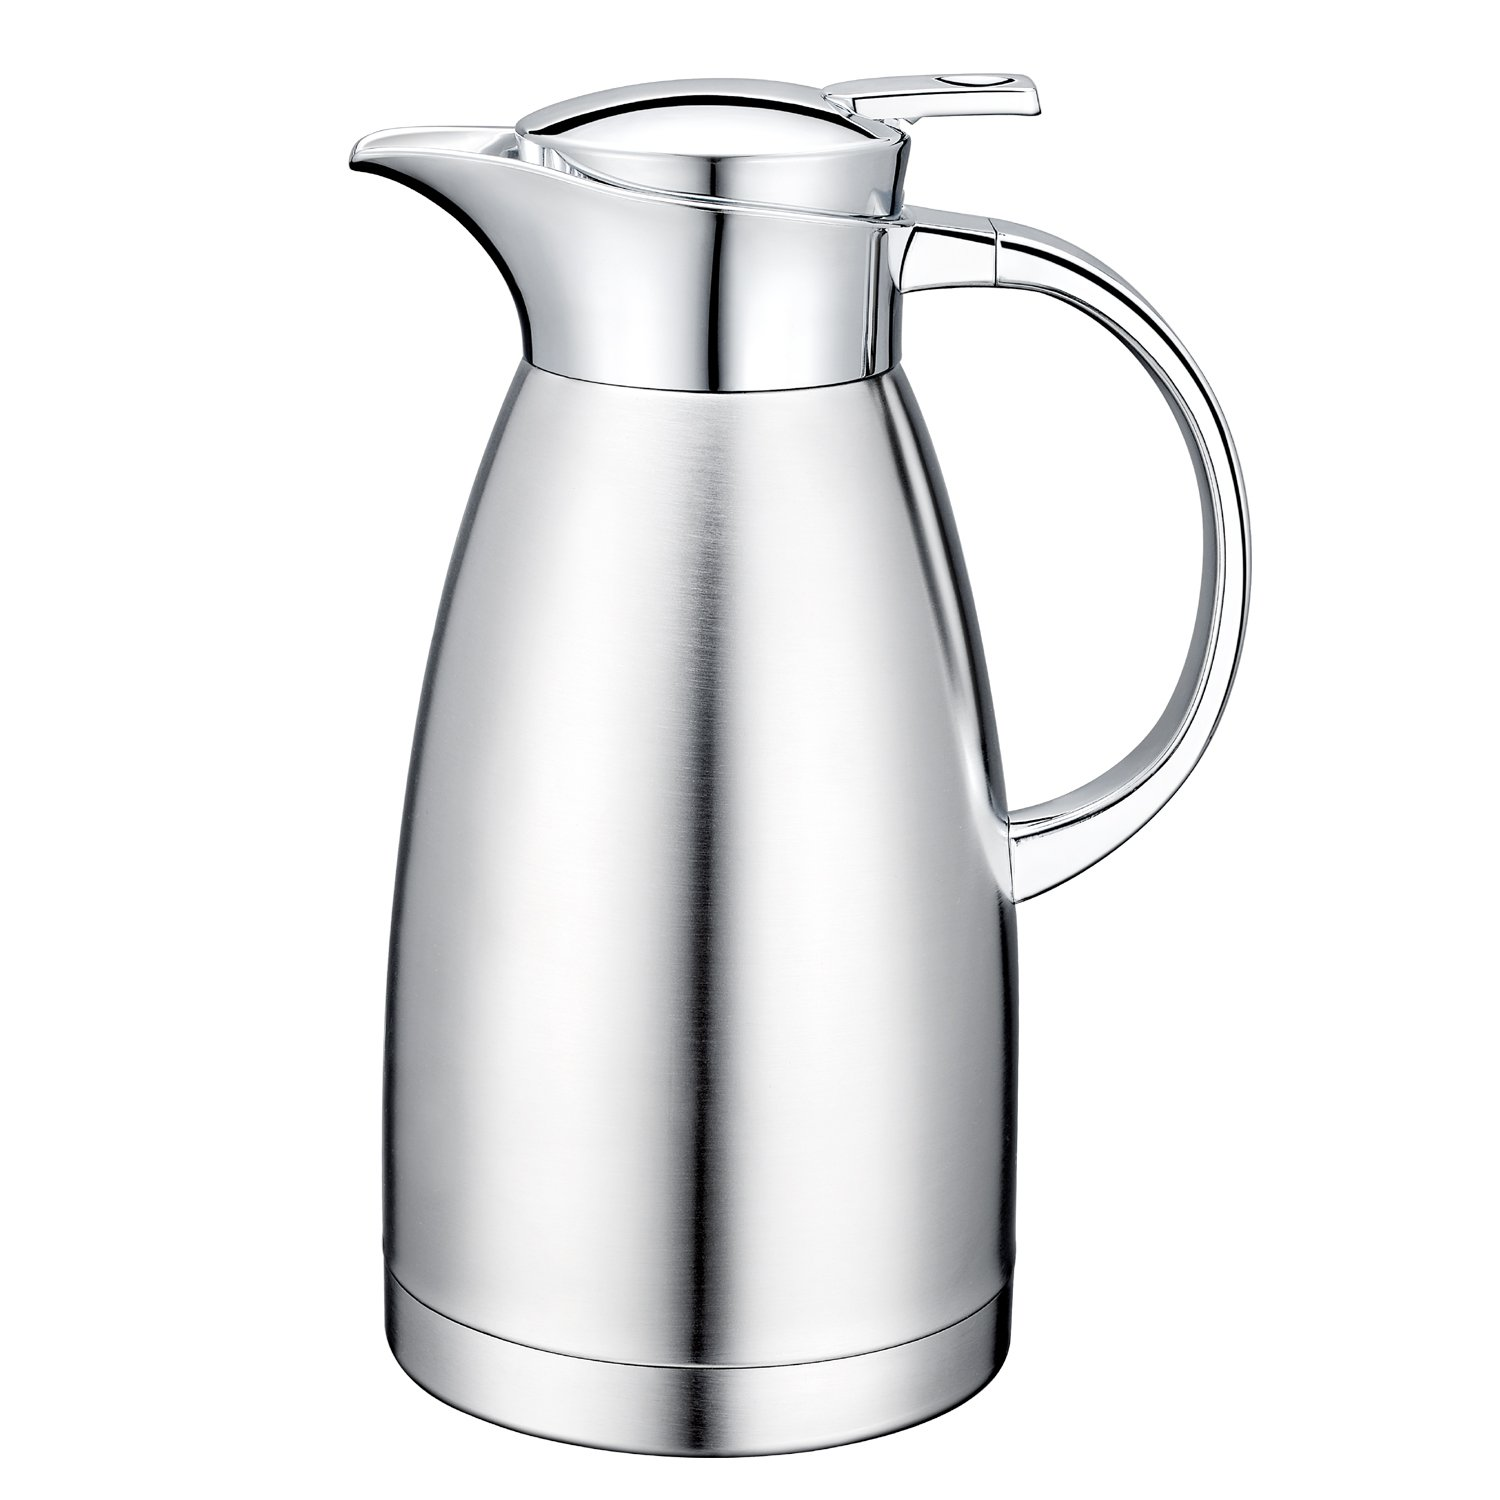 64 Oz 18/10 Stainless Steel Coffee Carafe Thermos Carafe Double Walled with press button Vacuum Carafe Insulated by Gabbay 4335459661